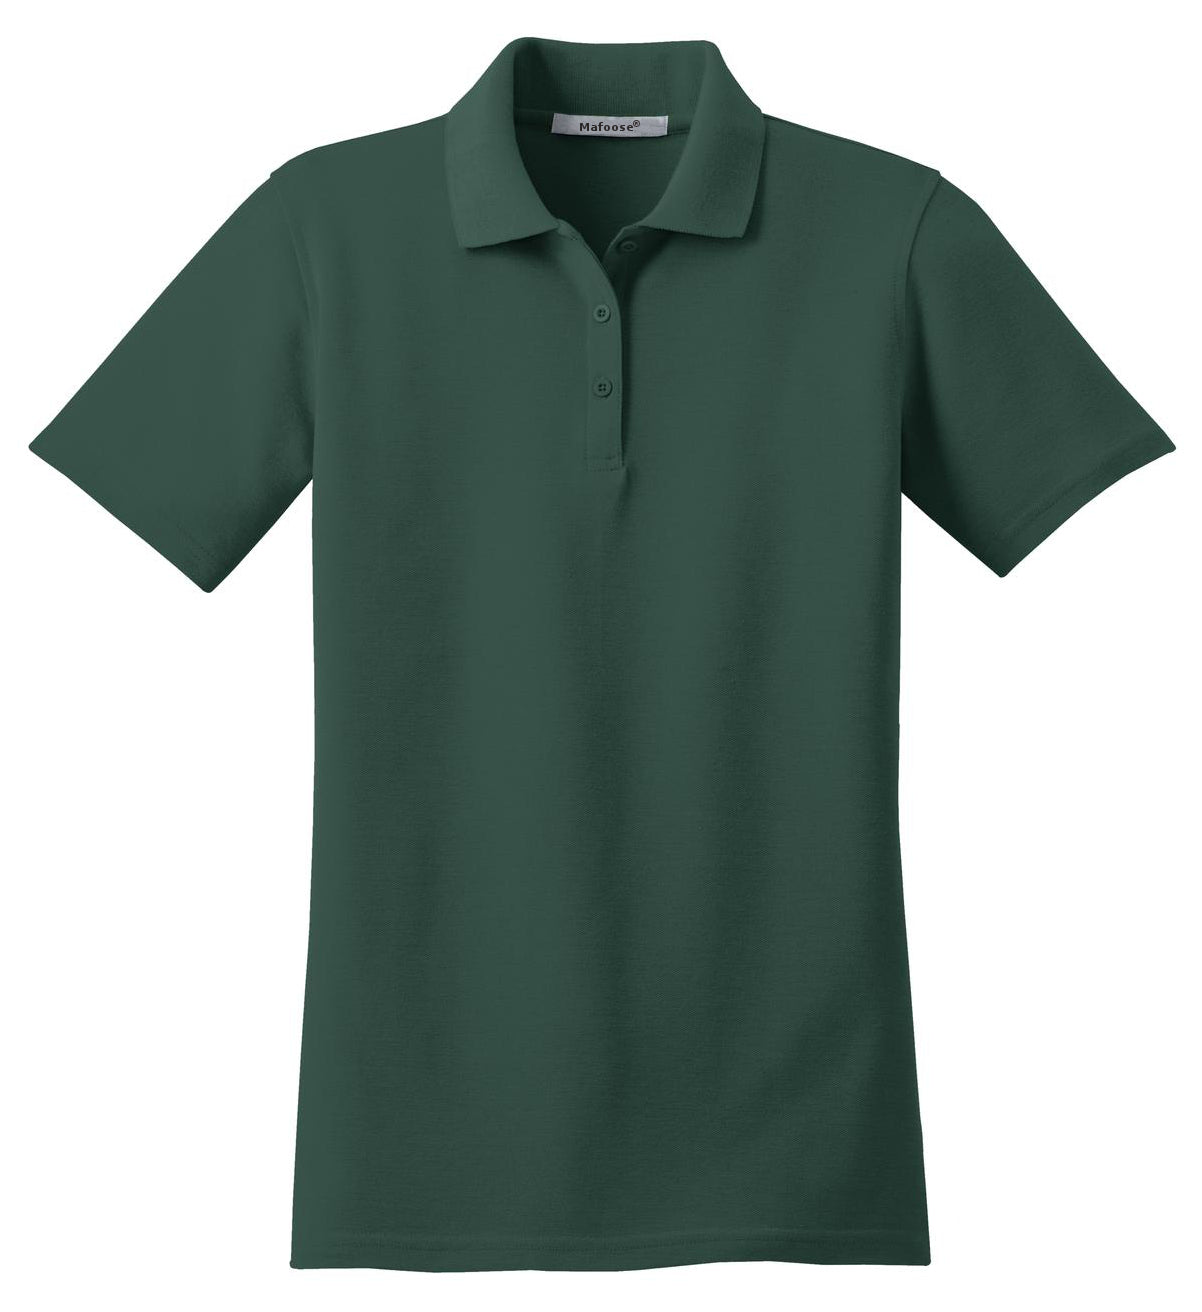 Mafoose Women's Stain Resistant Polo Shirt Dark Green-Front